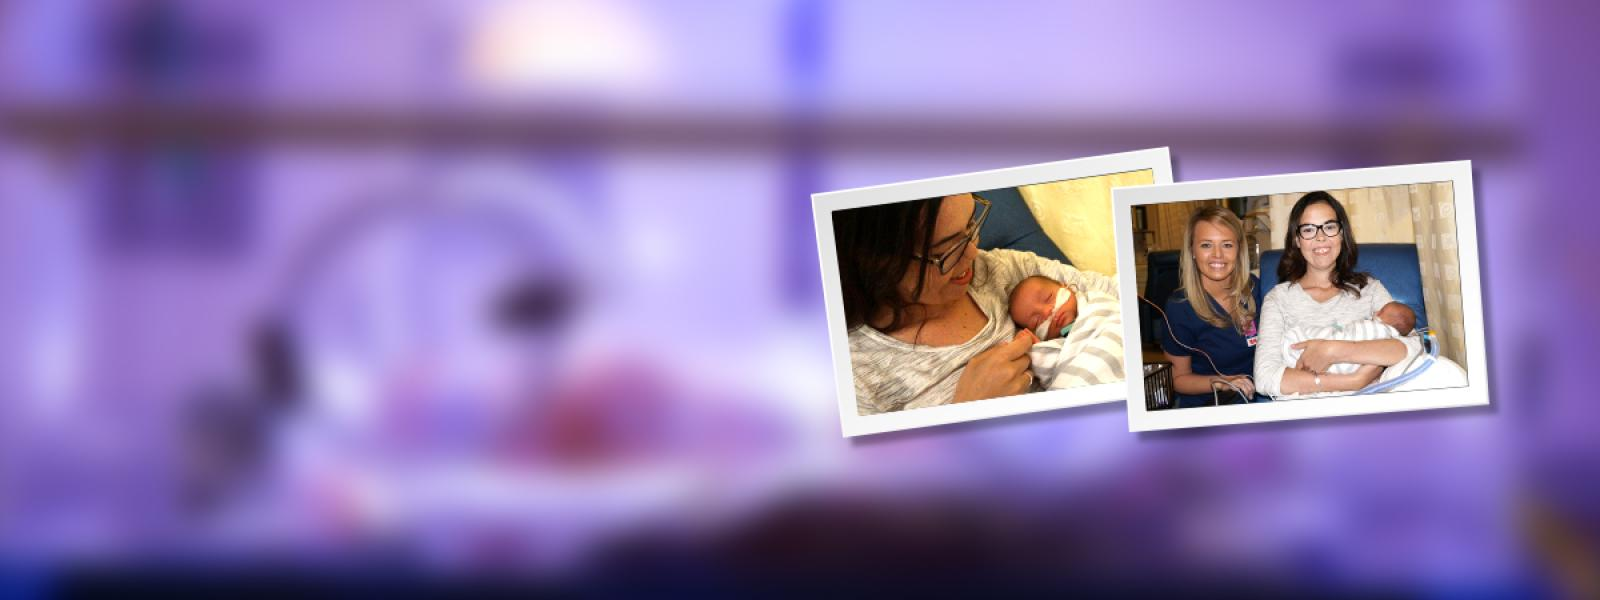 Tiny NICU baby writes mommy in ICU